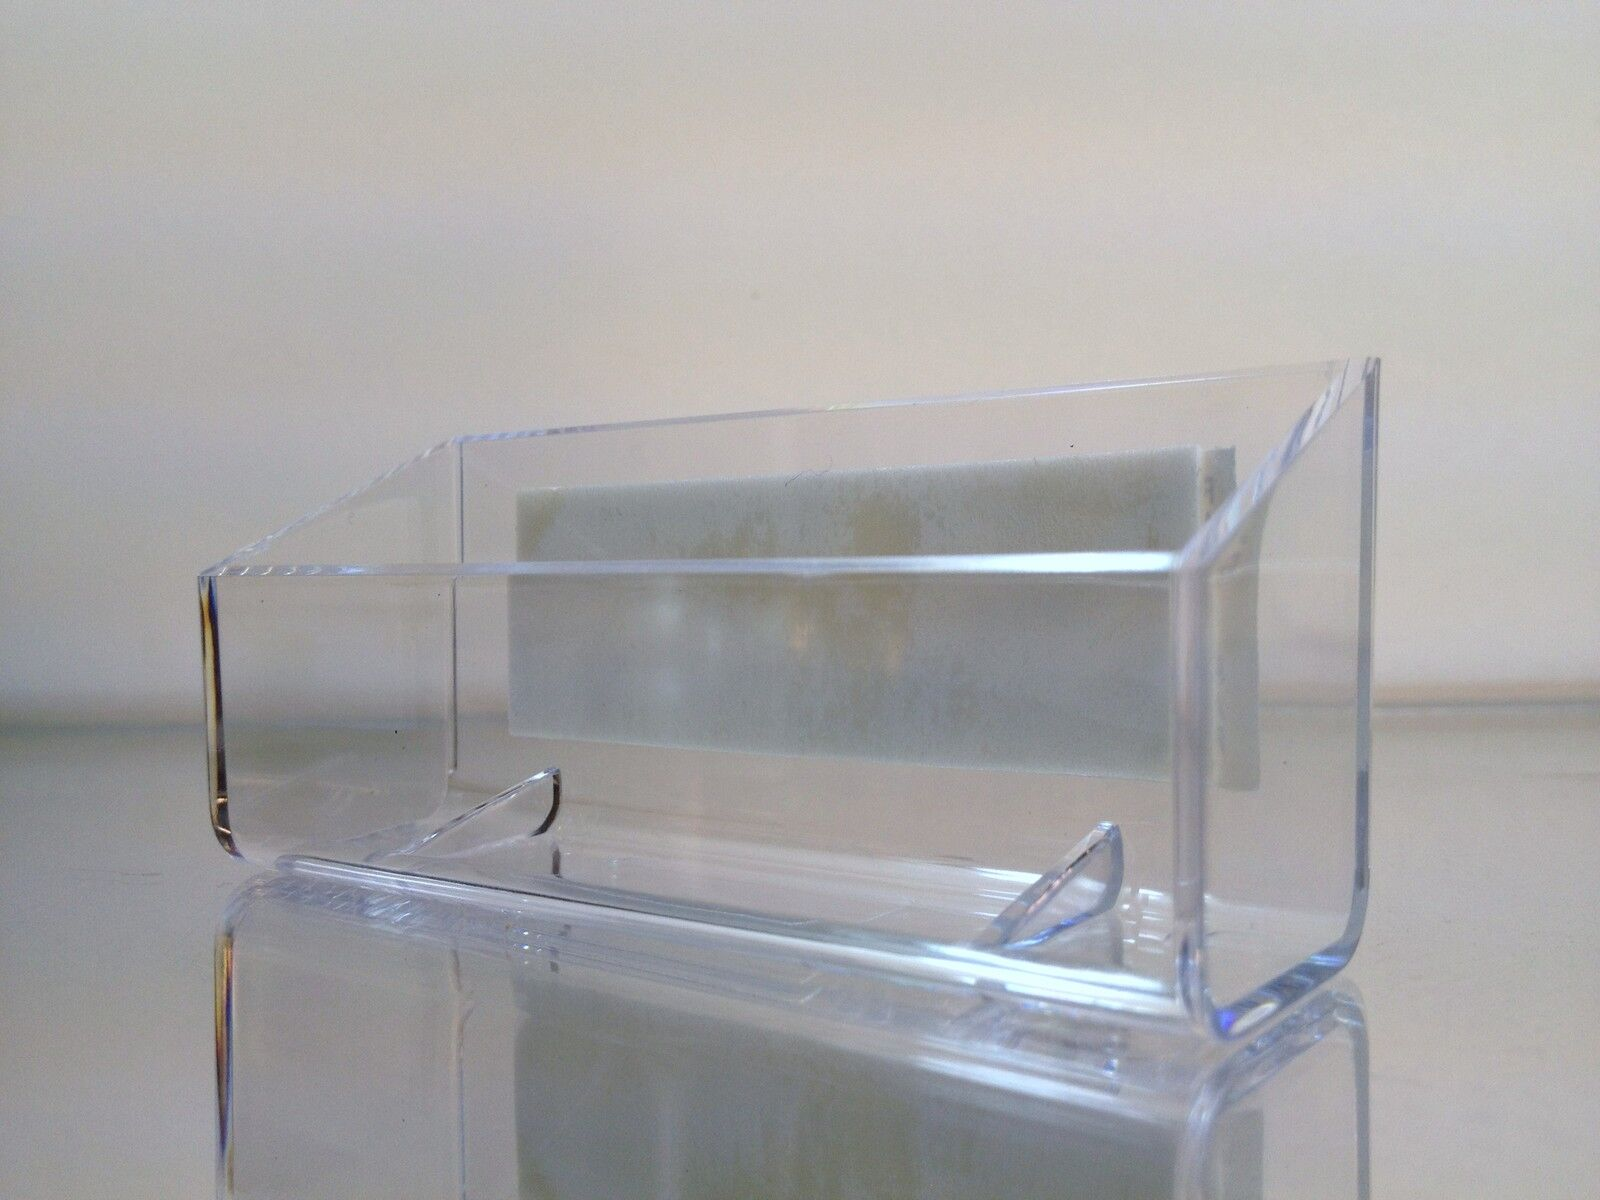 Clear plastic business card holder display with an ADDHESIVE STRIP ...